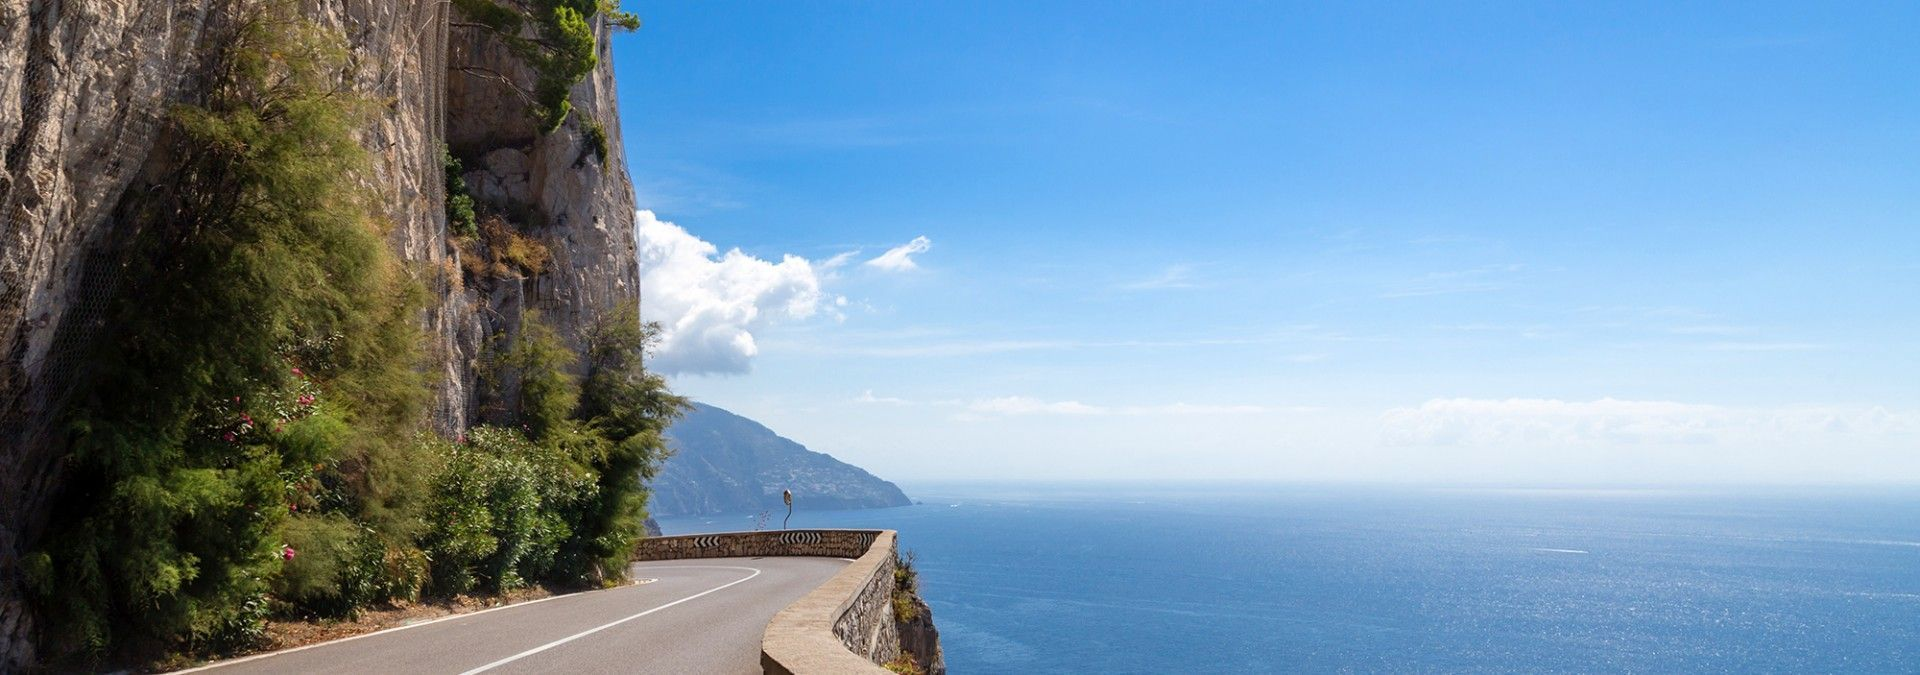 Amalfi_Coast_Road.jpg